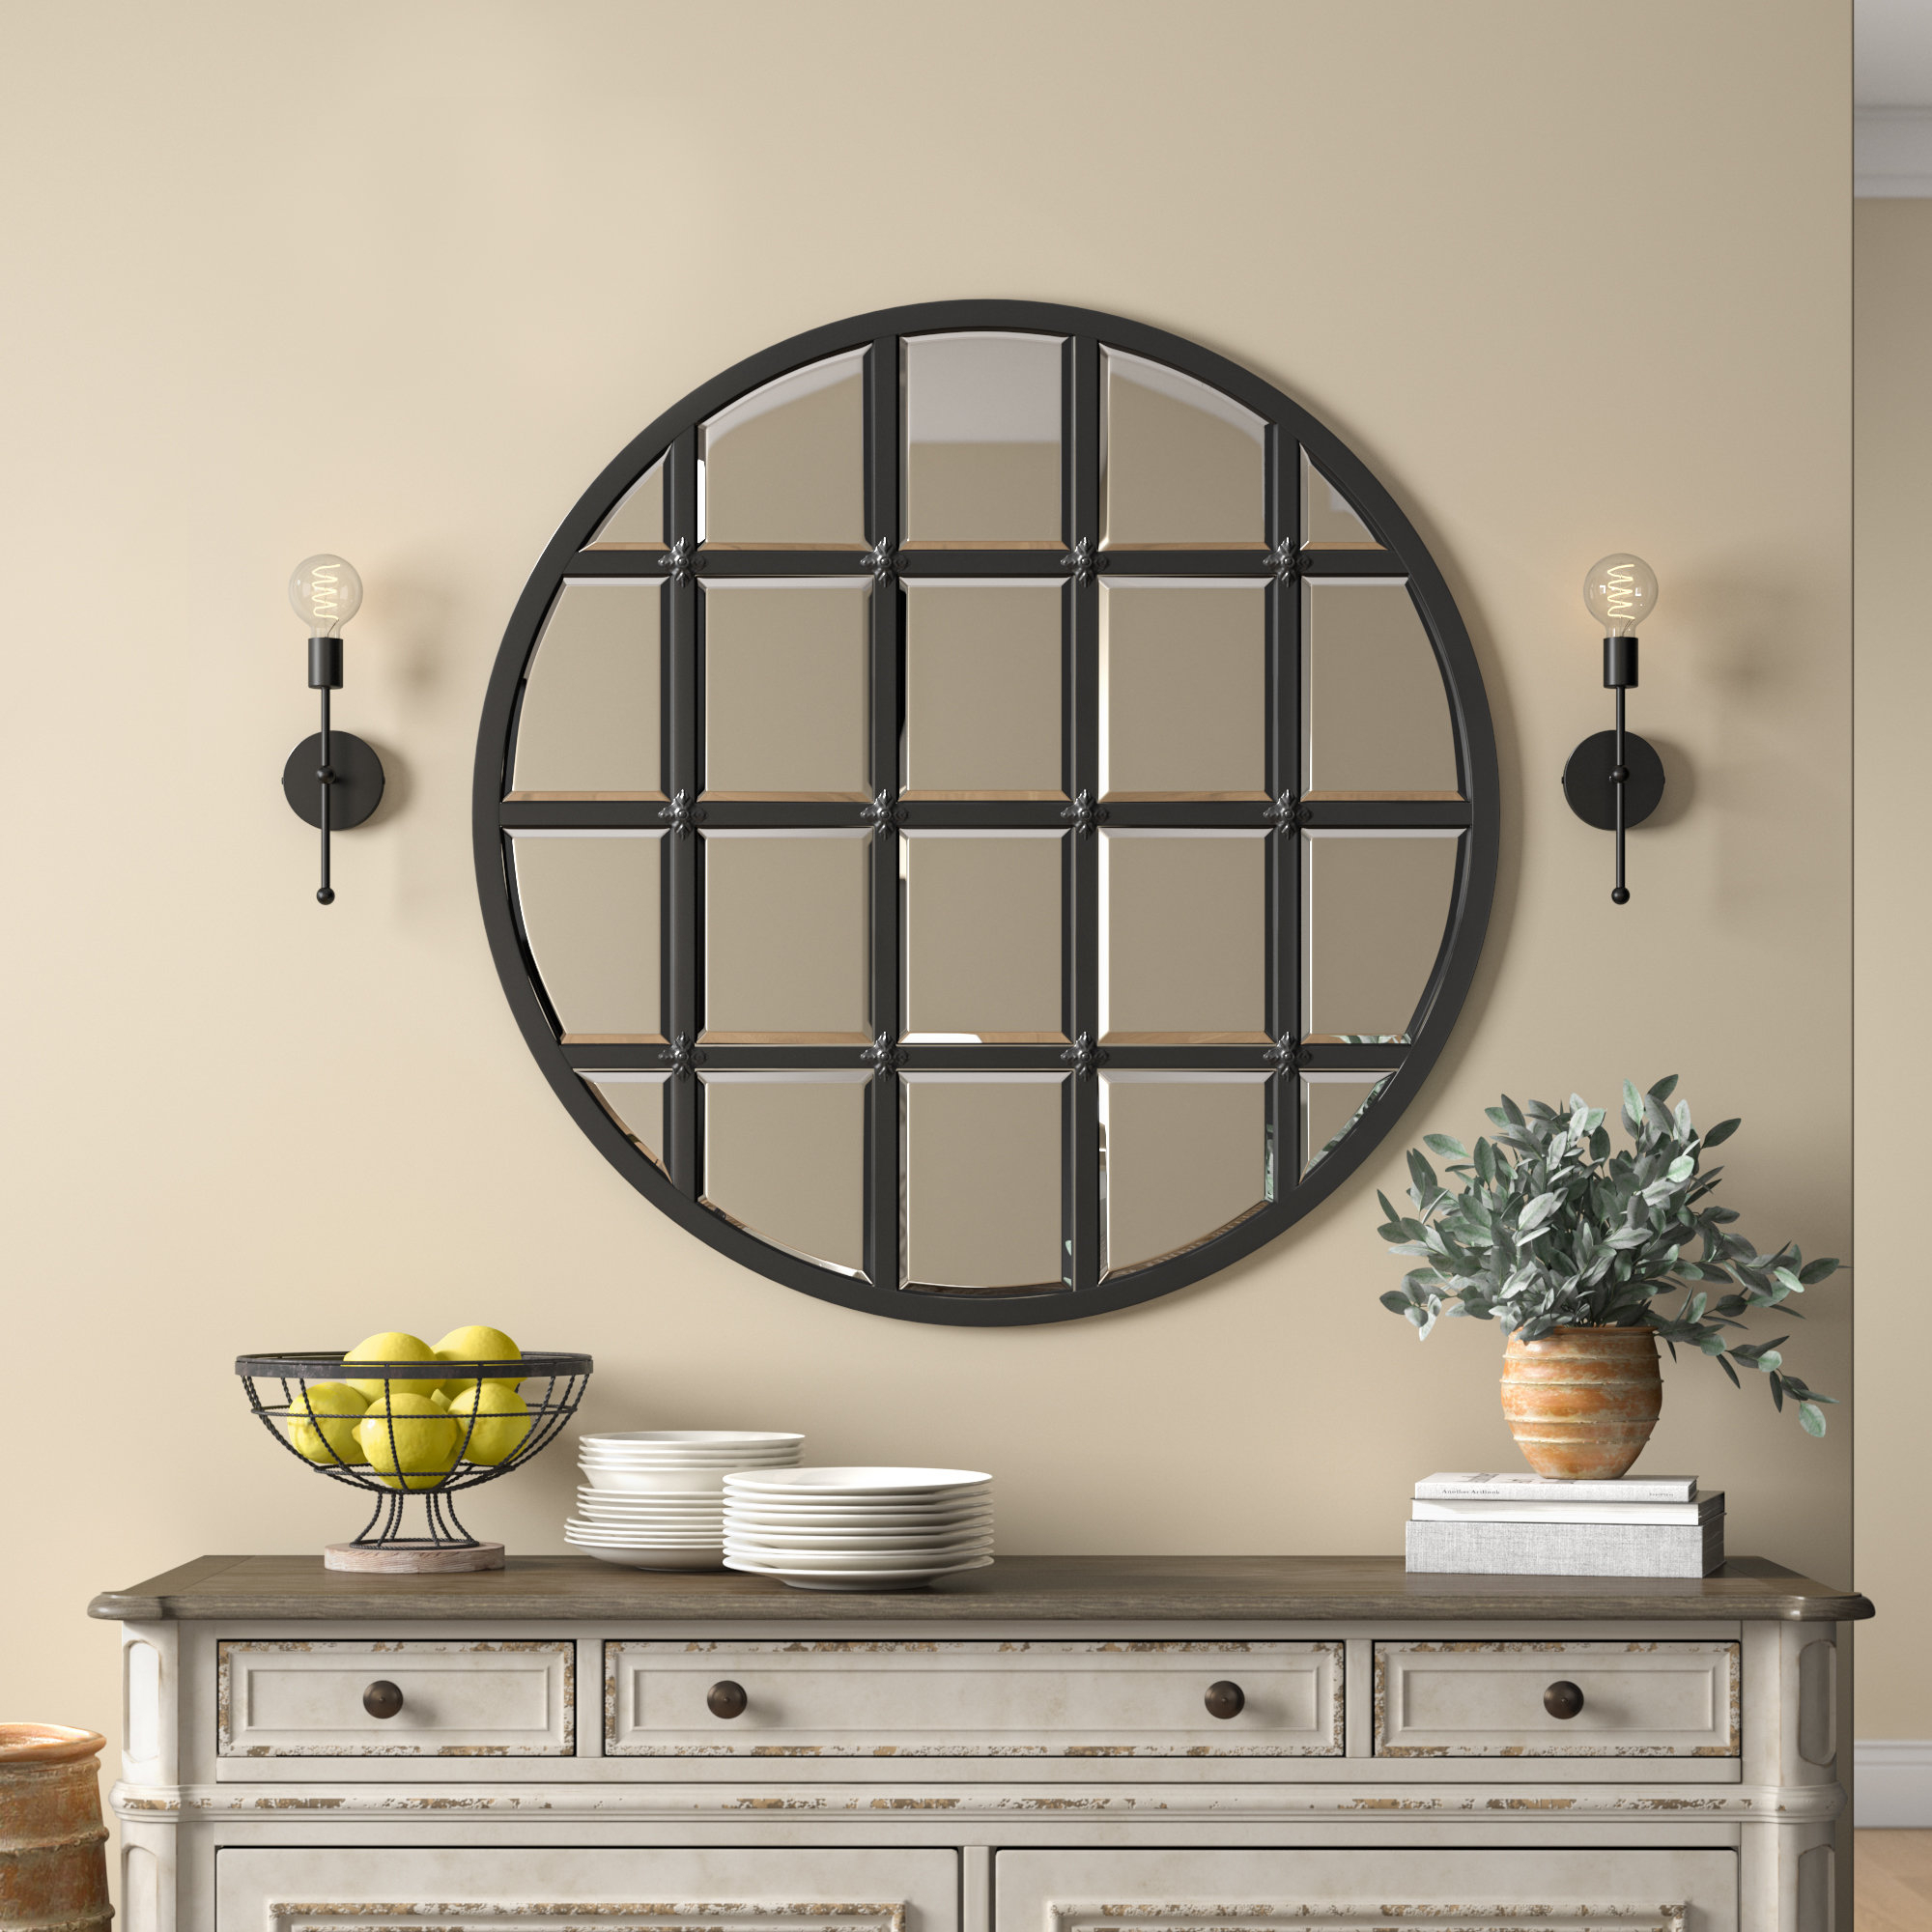 Black Industrial Wall Mirrors You'll Love In 2019   Wayfair Regarding Austin Industrial Accent Mirrors (Image 9 of 30)